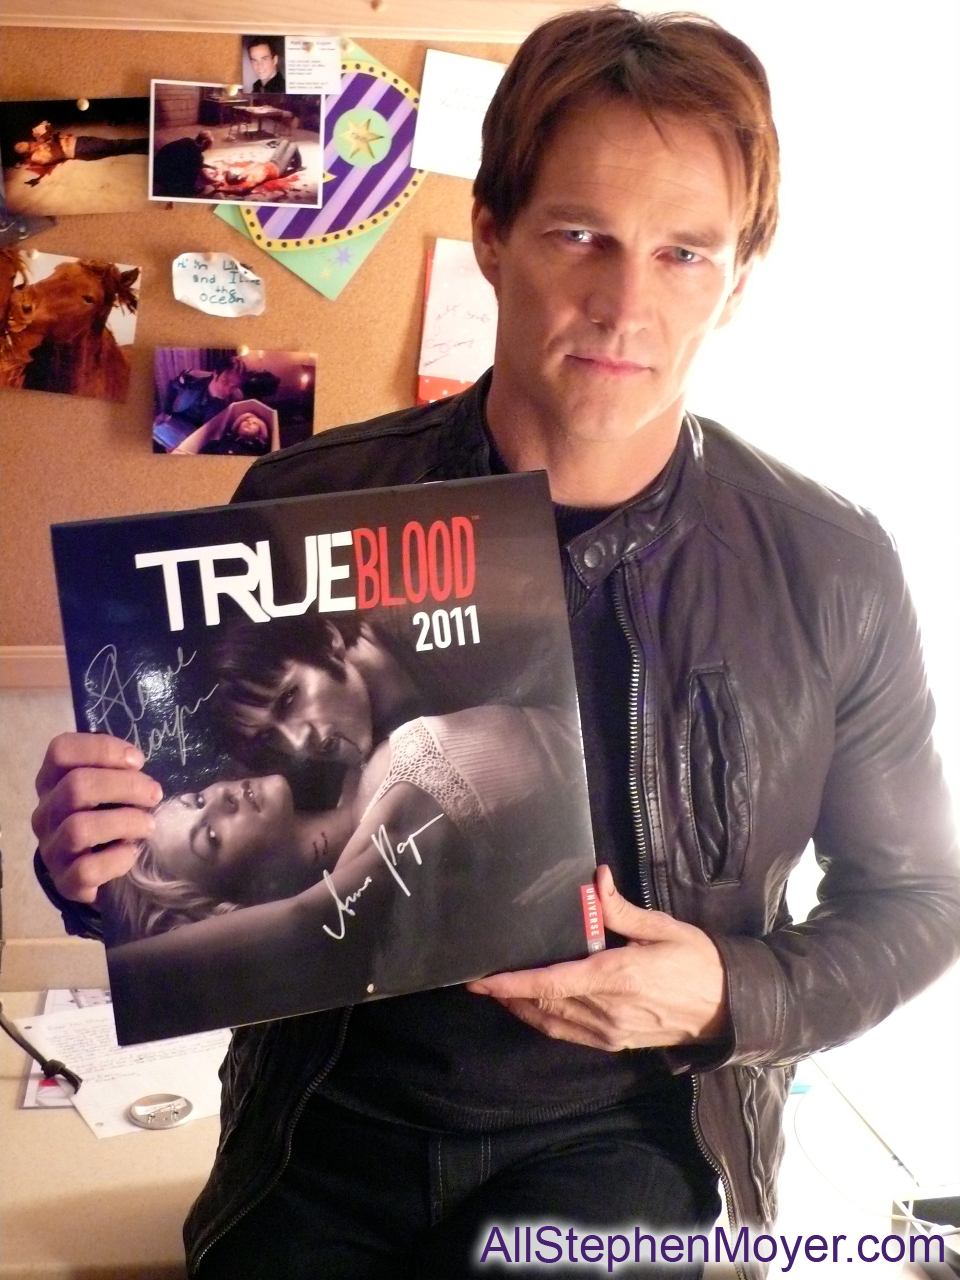 charity auction of true blood calendar signed by stephen moyer and all